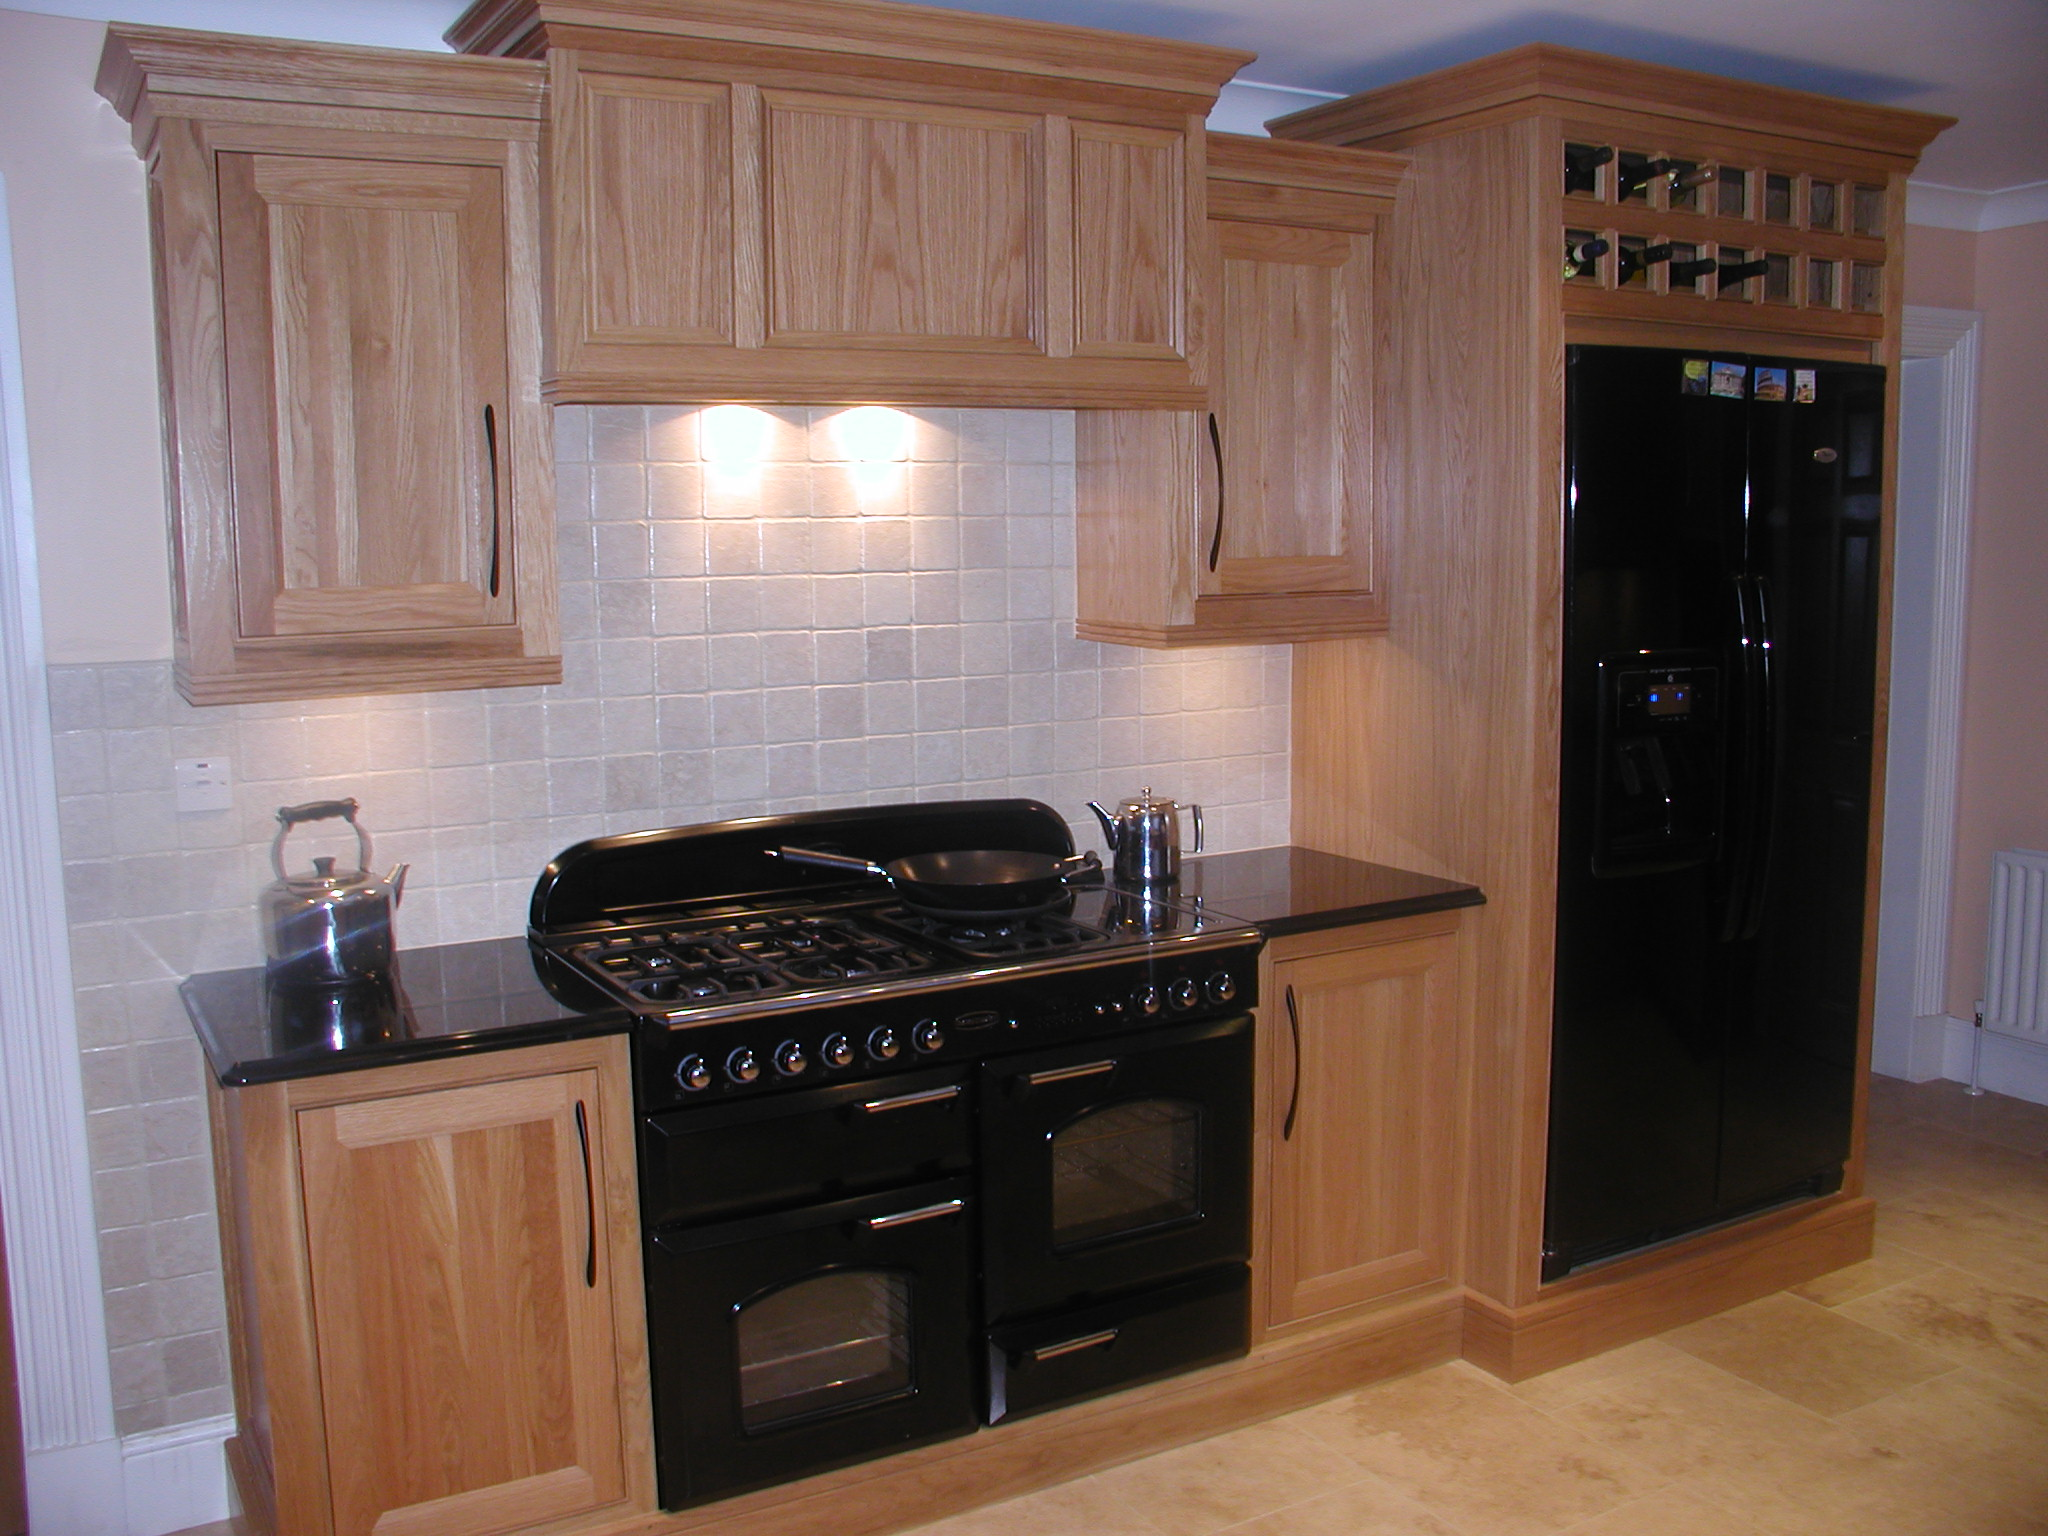 Thought forms ireland white oak for White oak cabinets kitchen